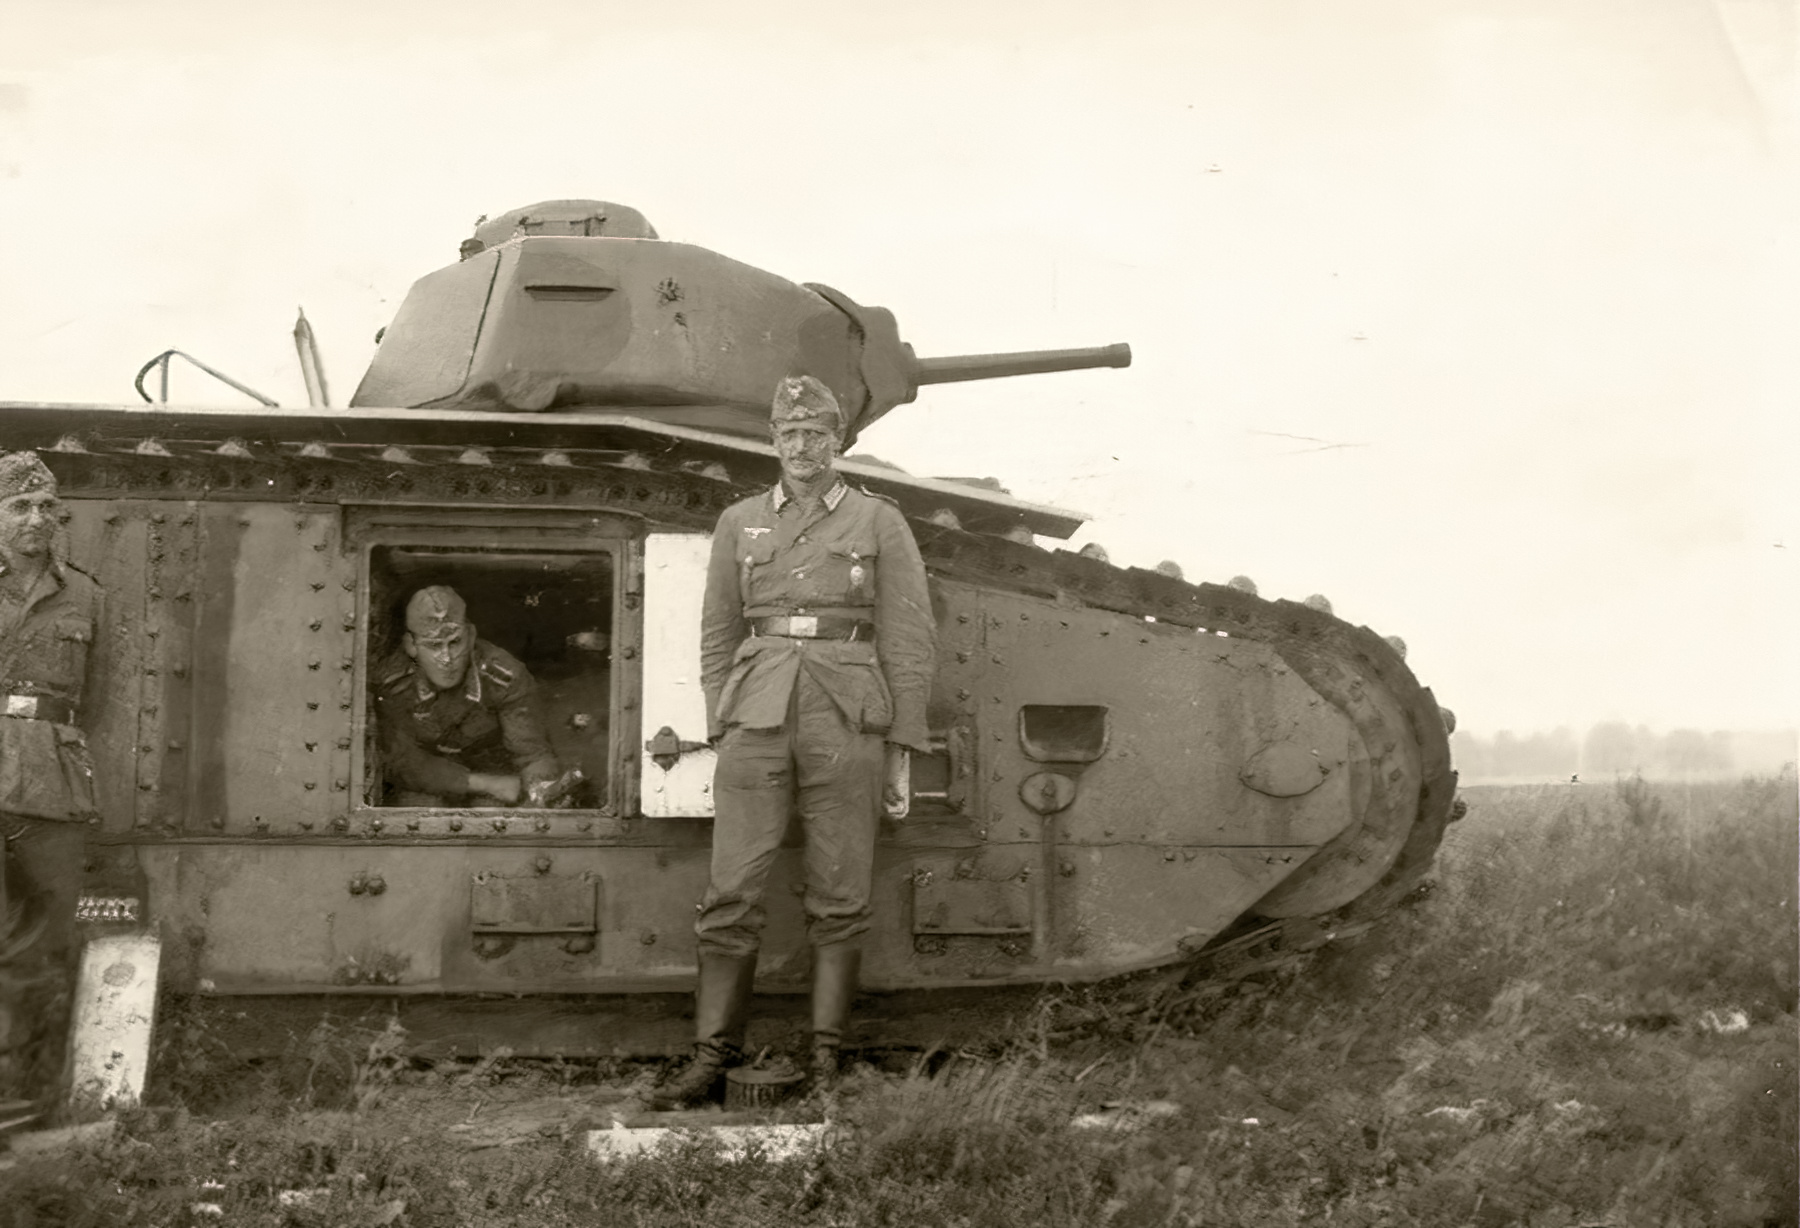 French Army Renault Char B1 captured during the battle of France 1940 ebay 01